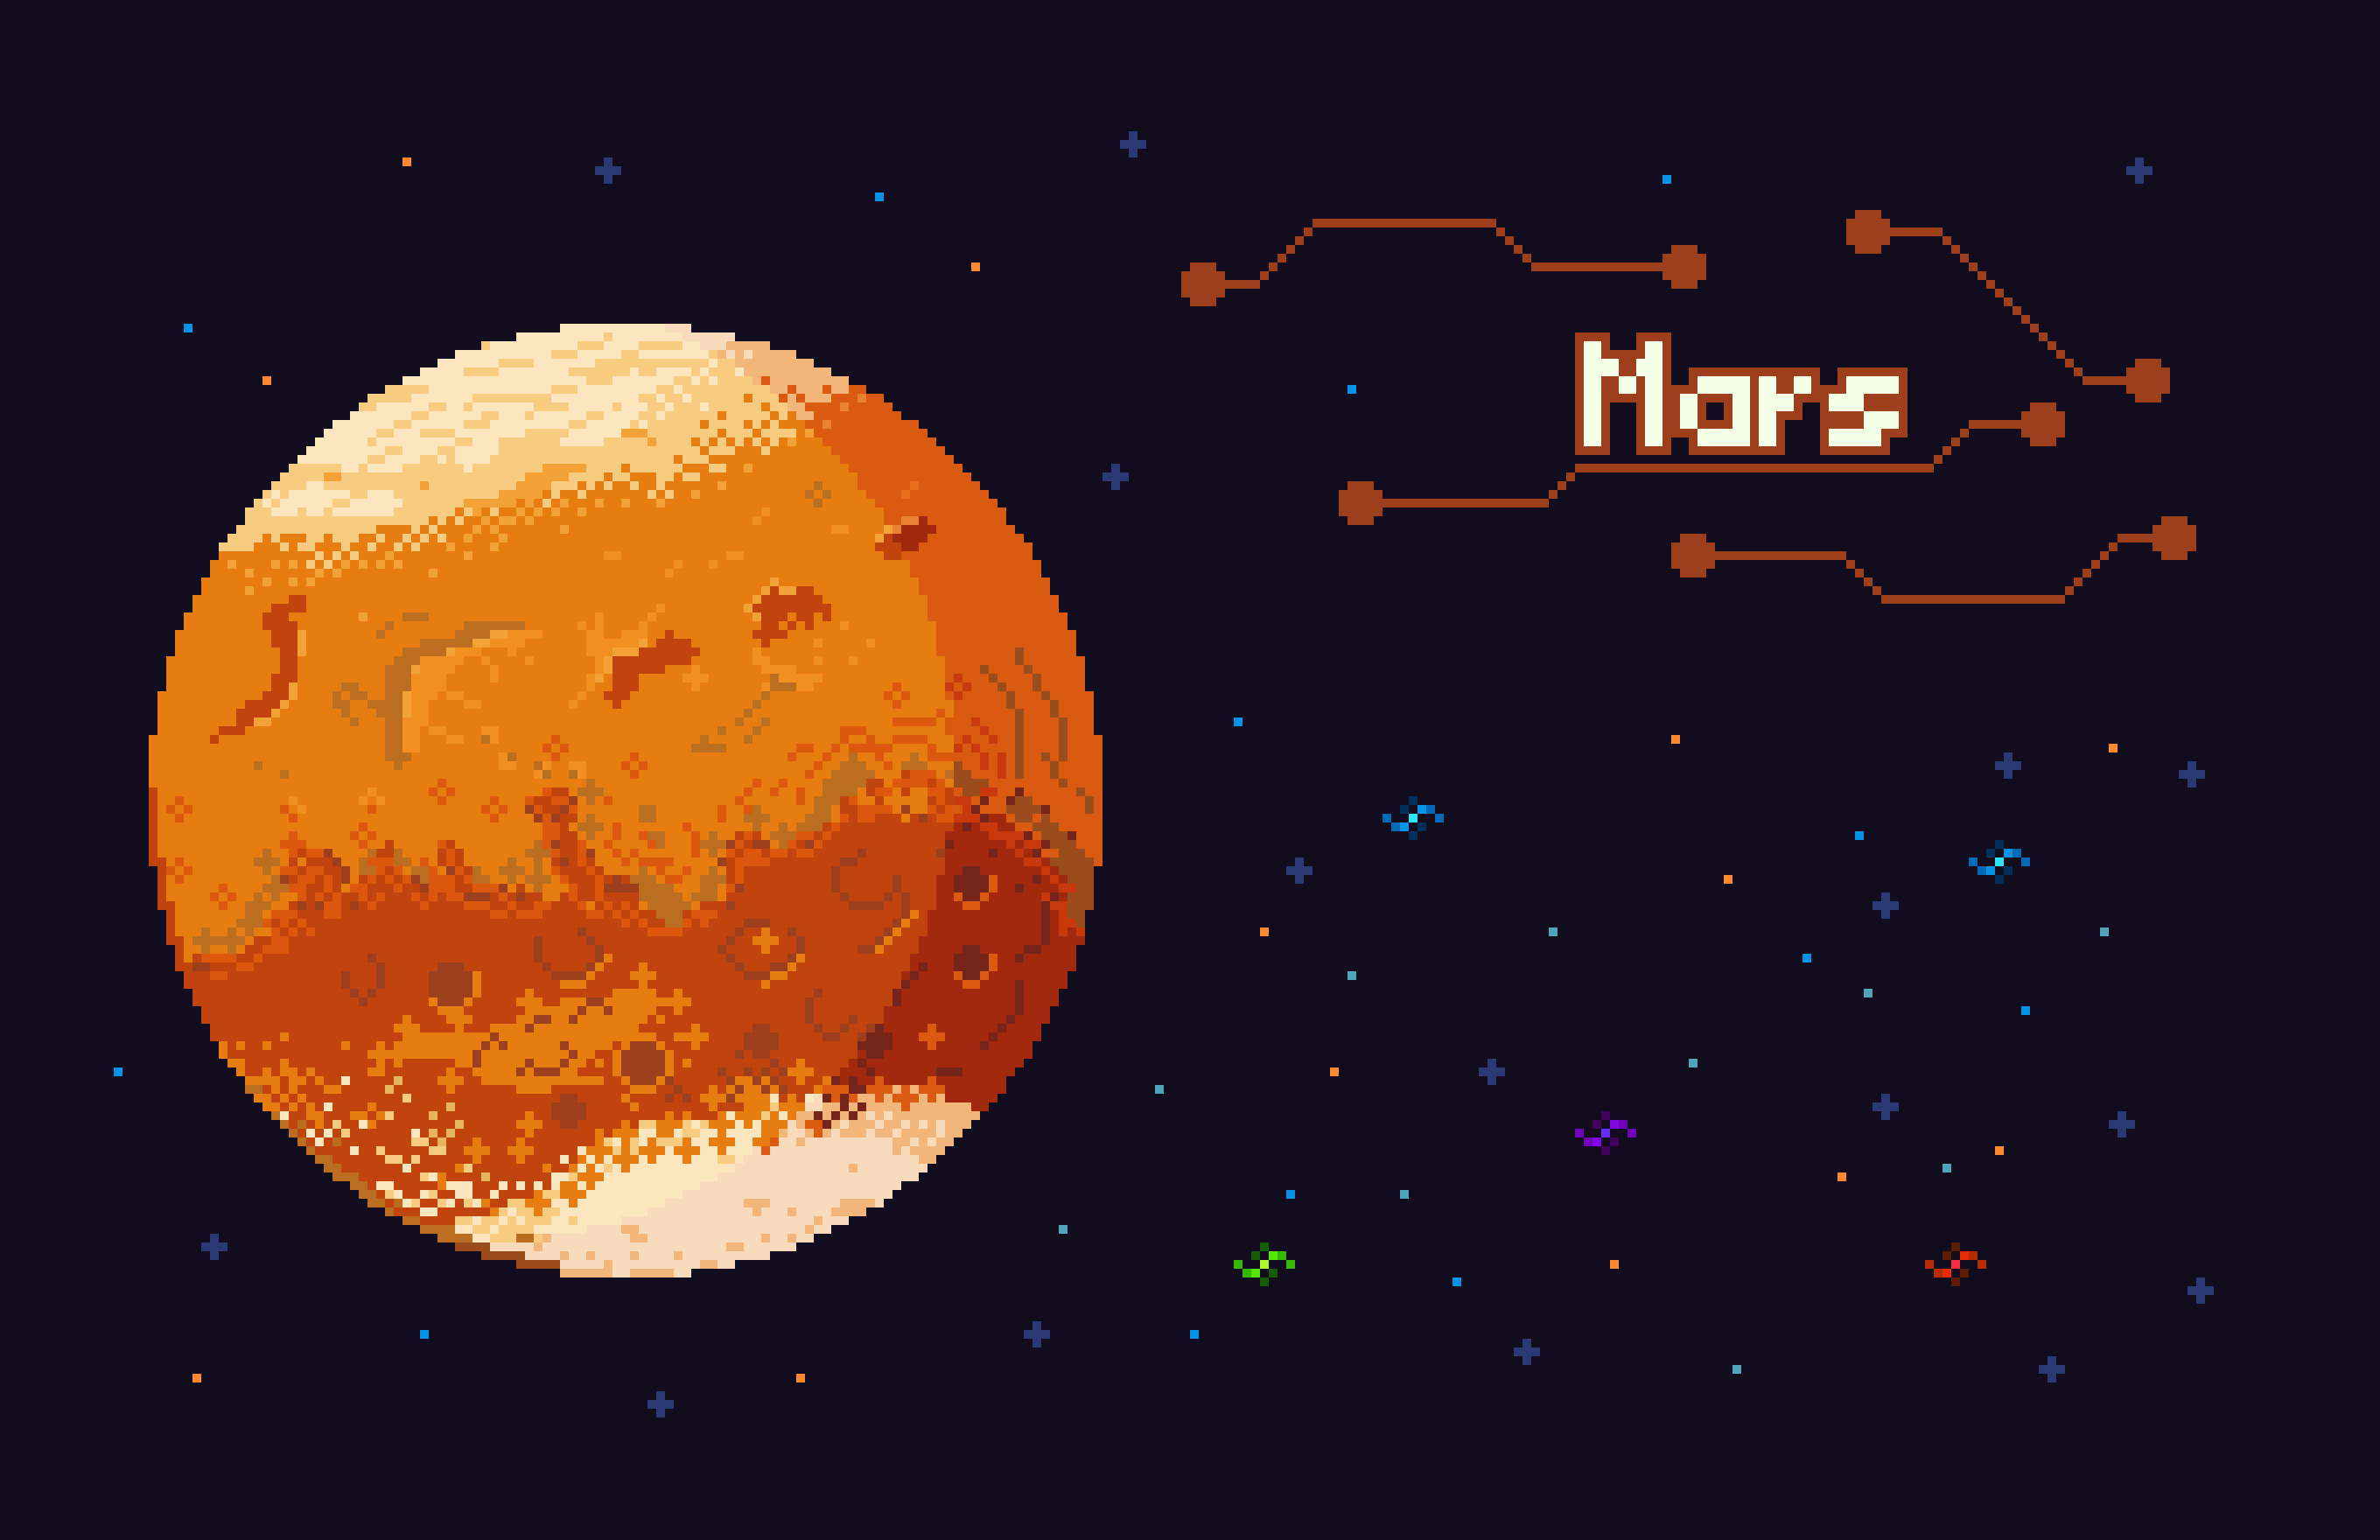 Image showing mars in space